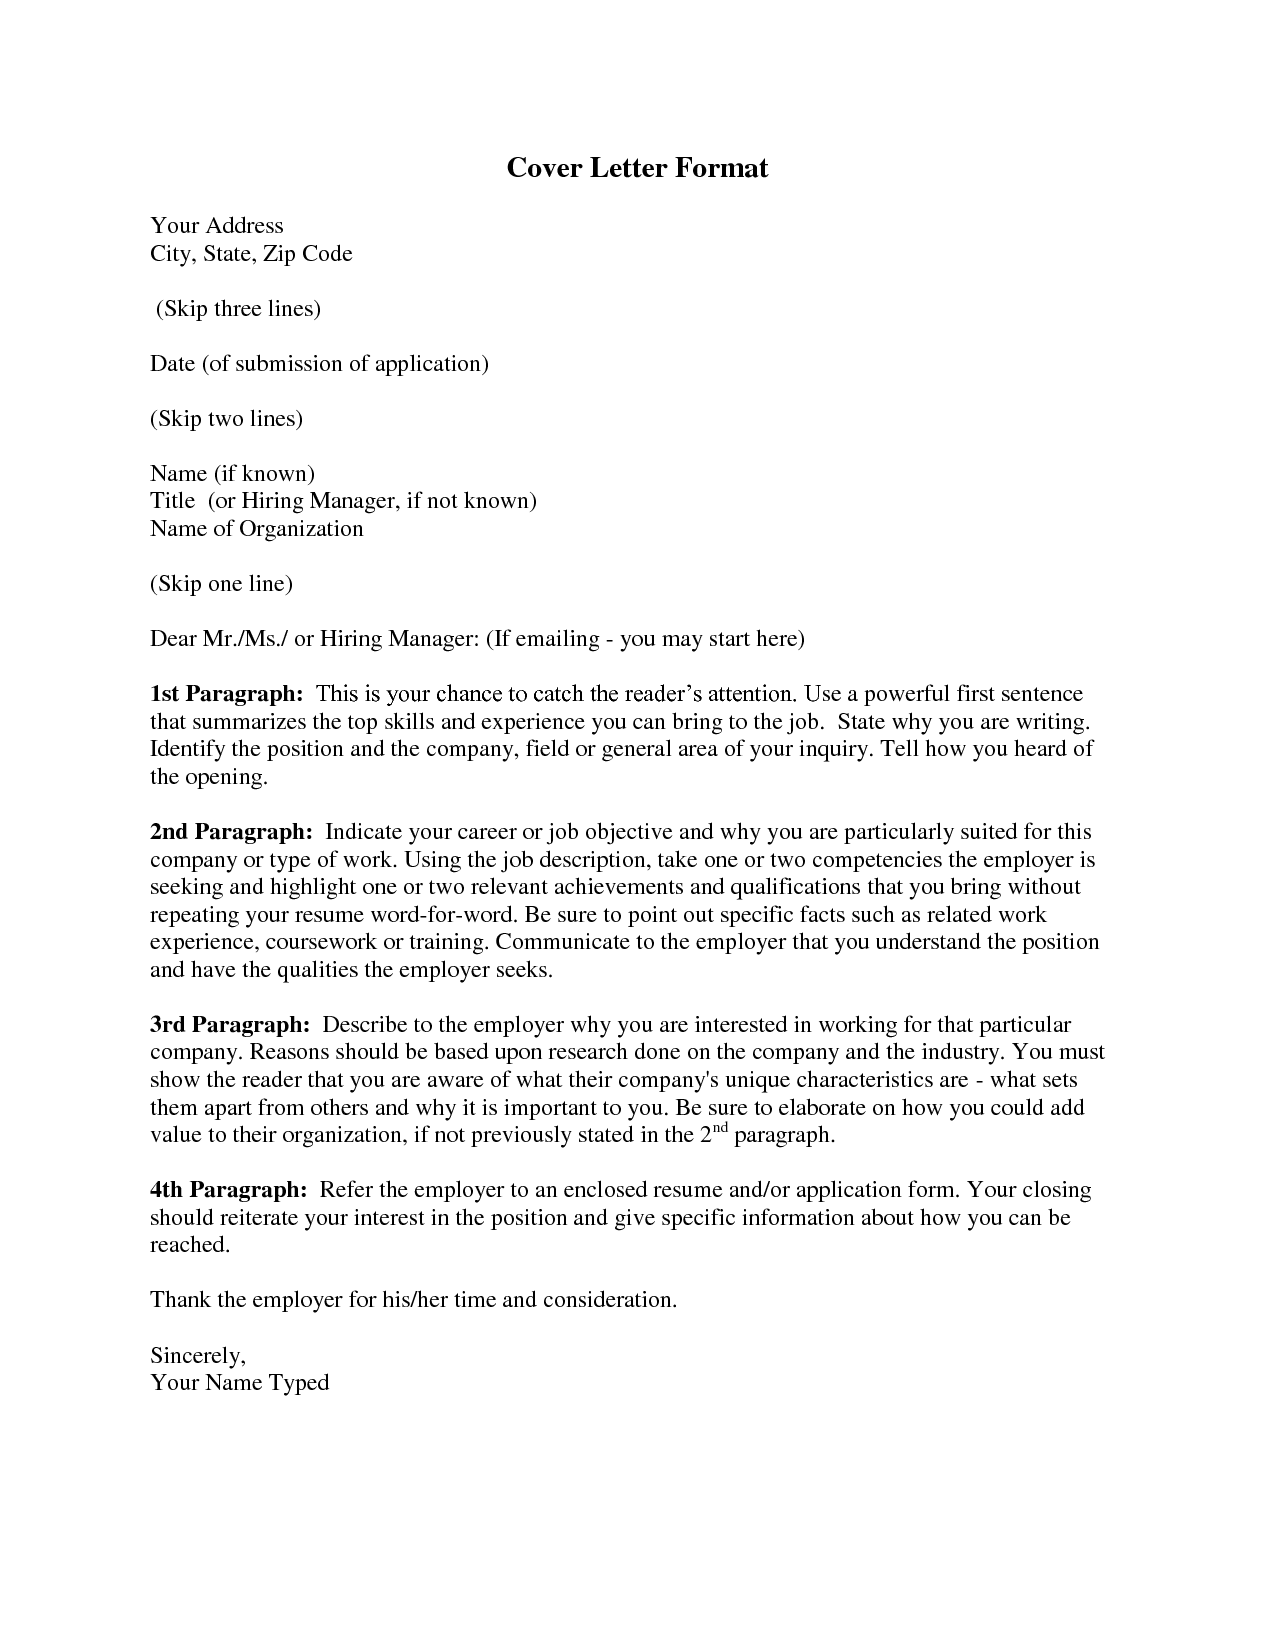 application form cover letter - Formatting A Cover Letter